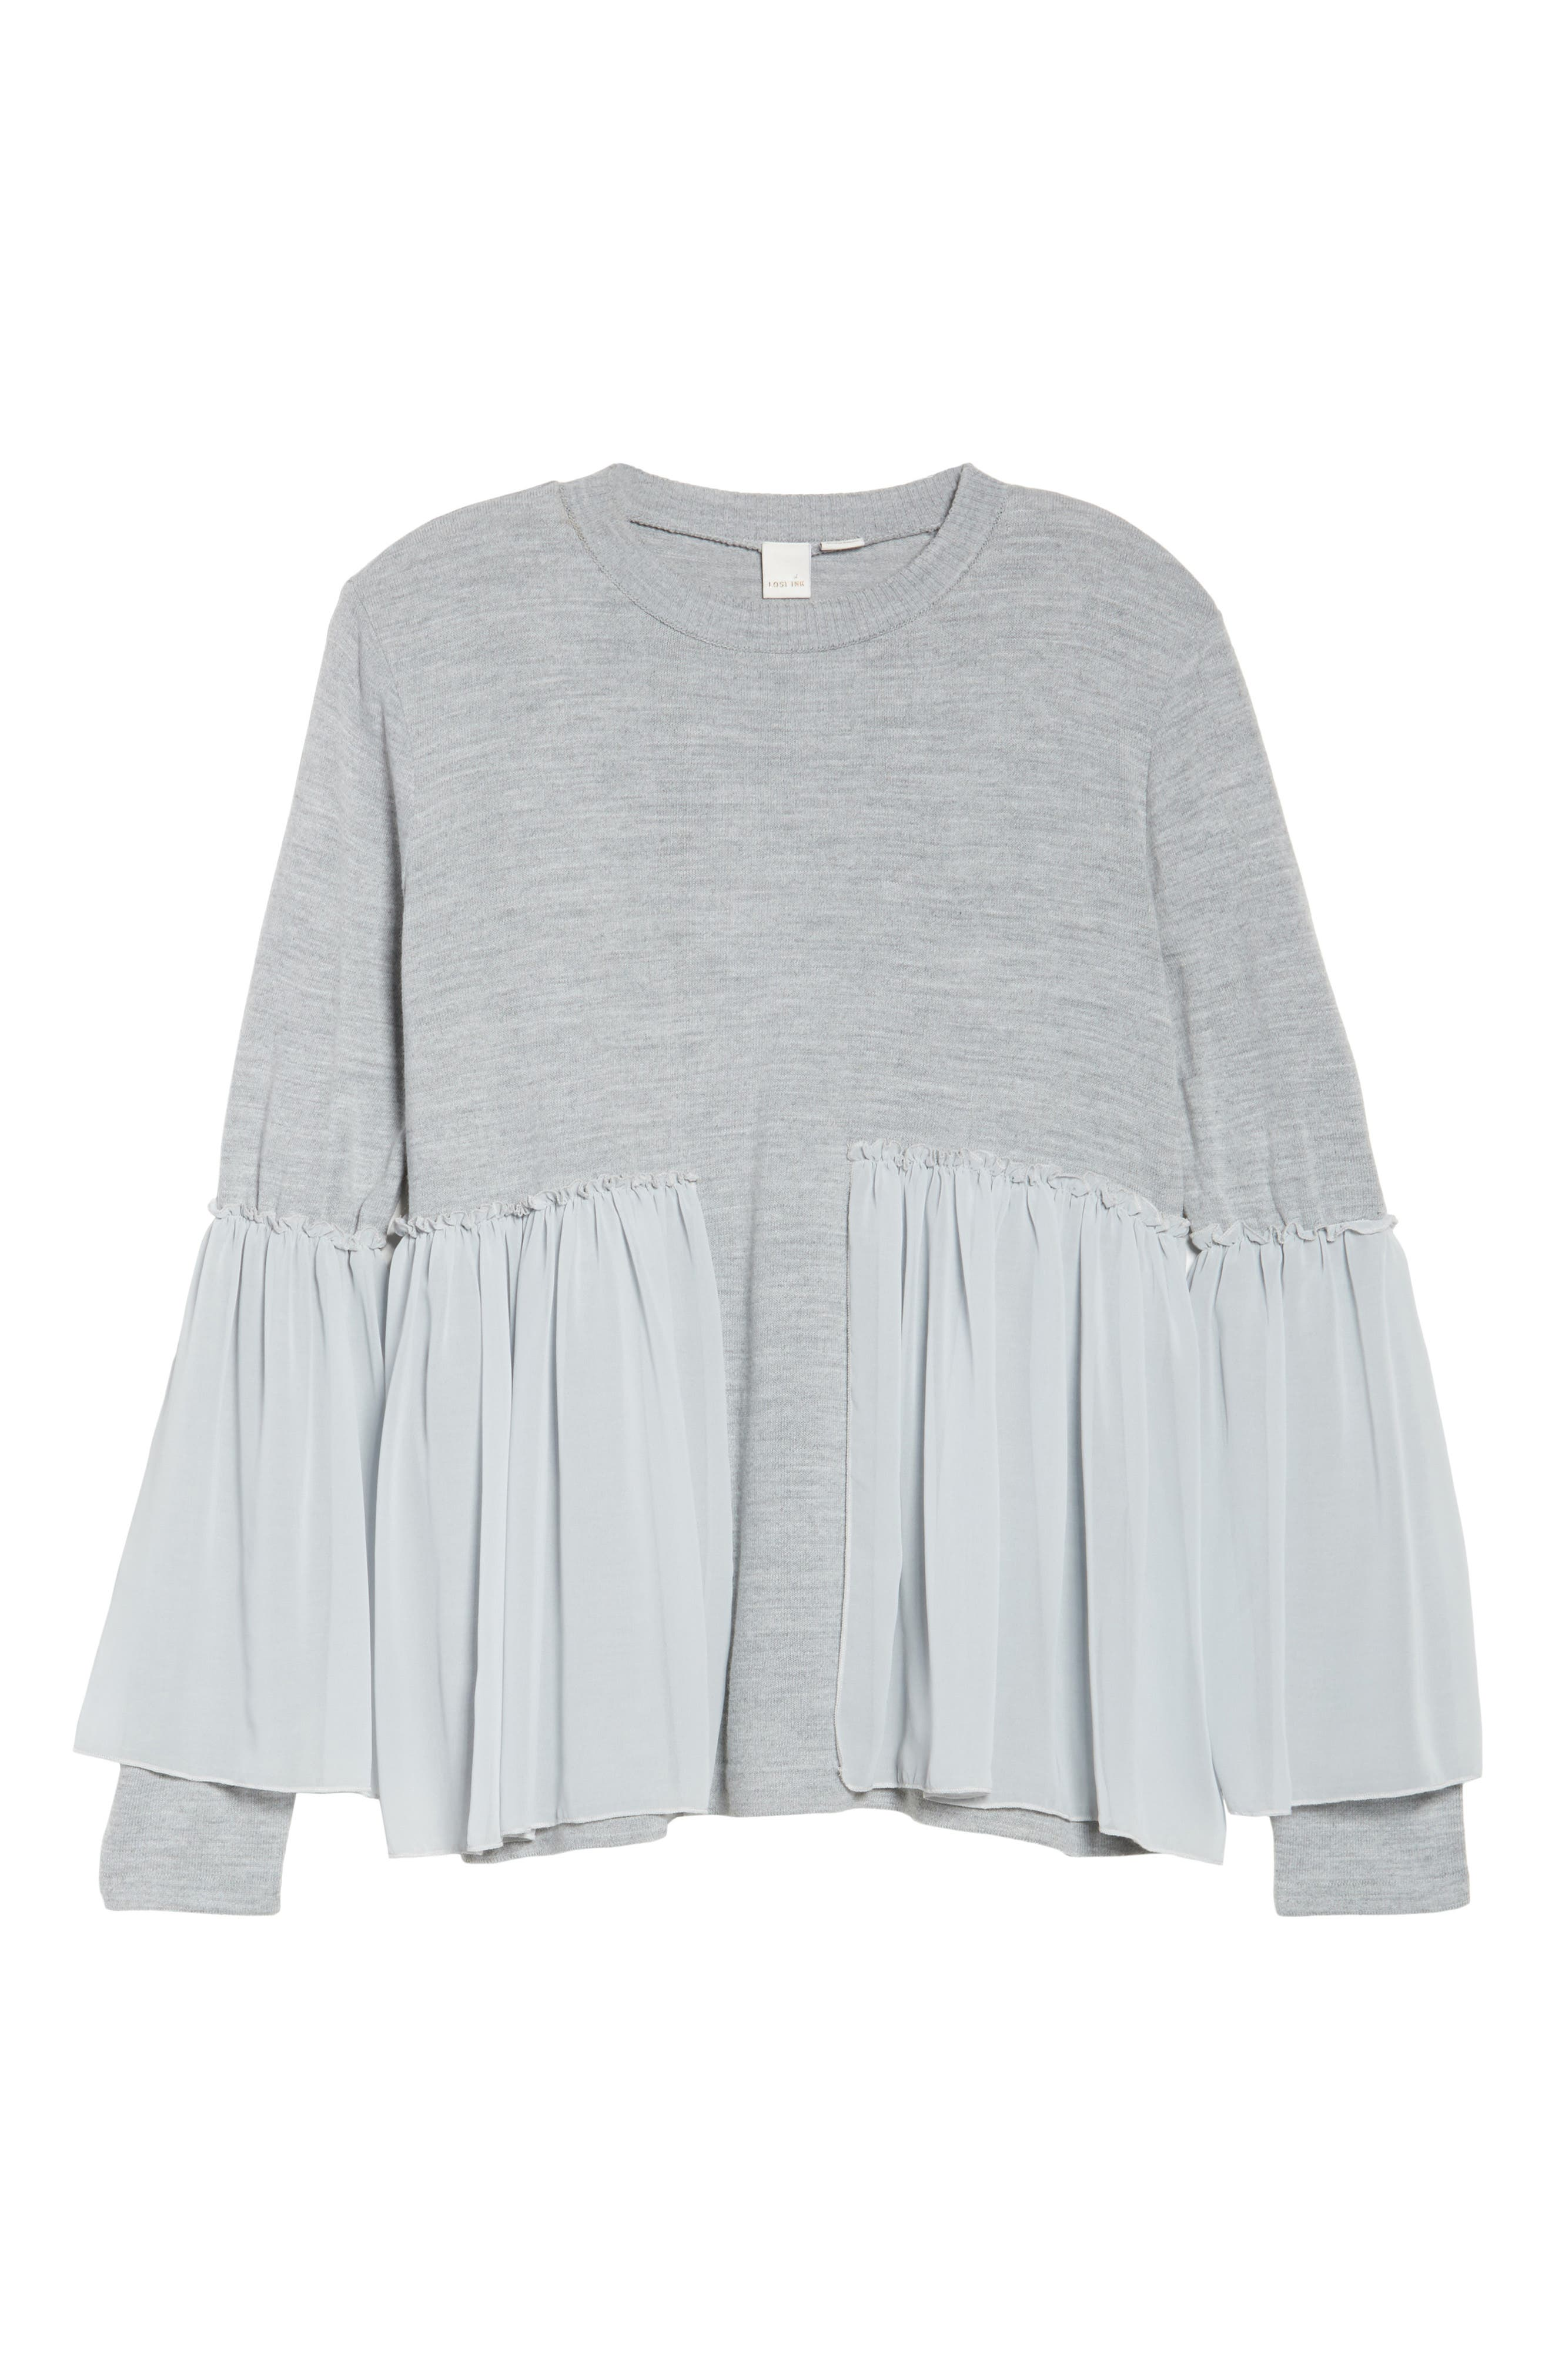 Smocked Chiffon Contrast Sweater,                             Alternate thumbnail 6, color,                             Grey